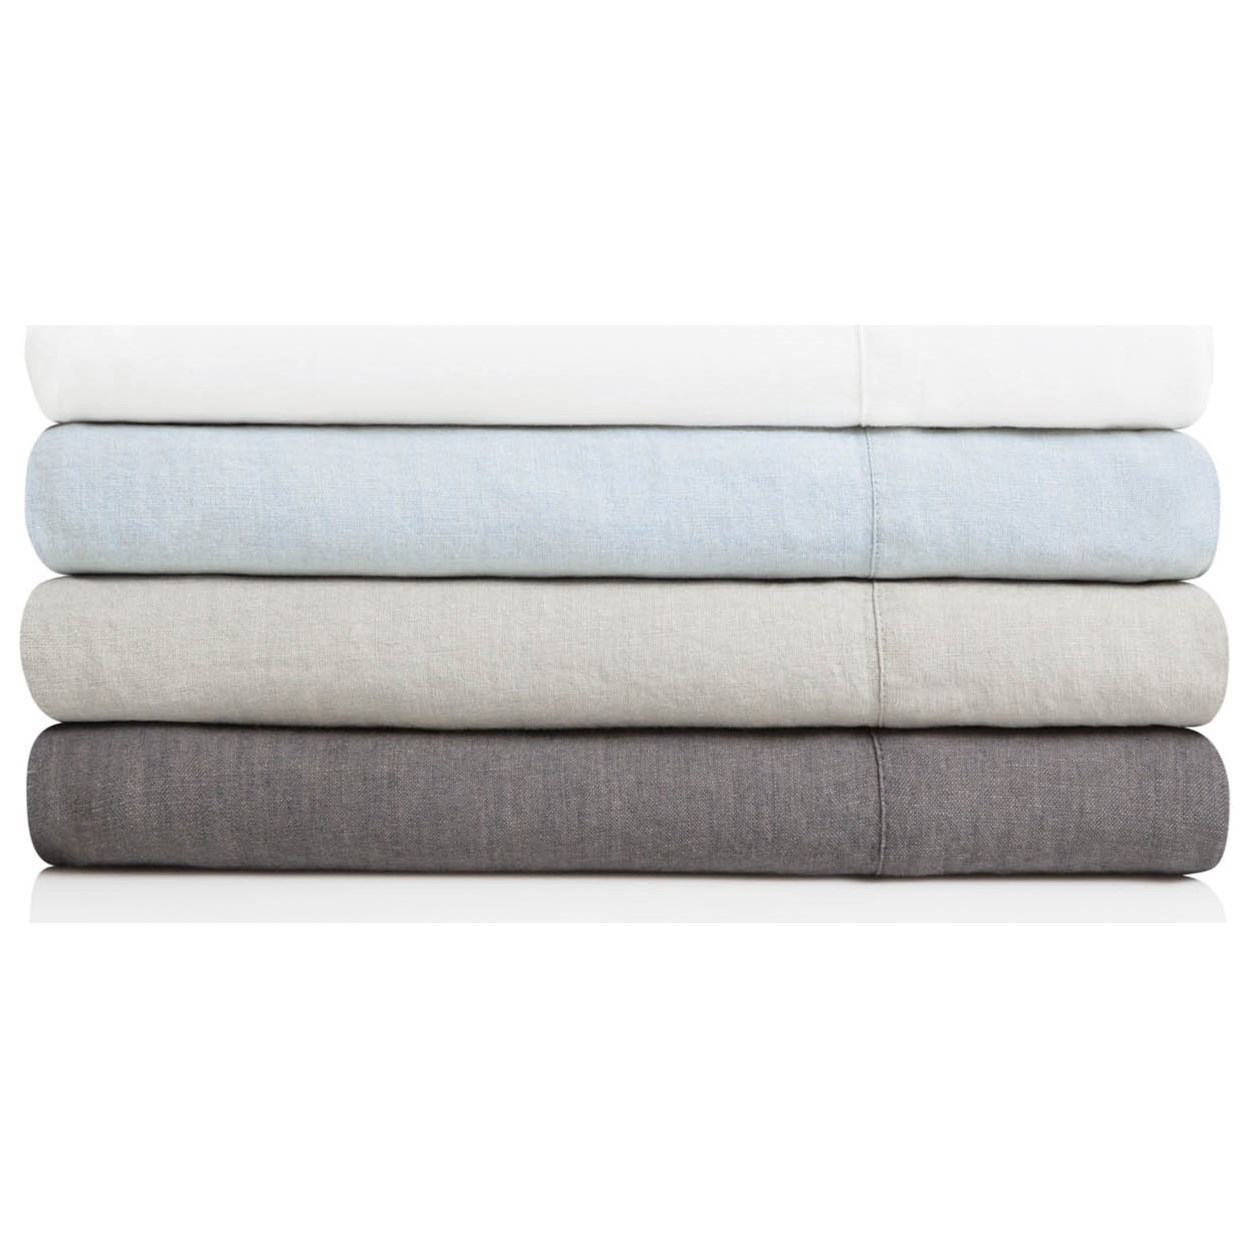 Malouf French Linen Split Cal King Sheet Set - Item Number: WO162SCSMLS